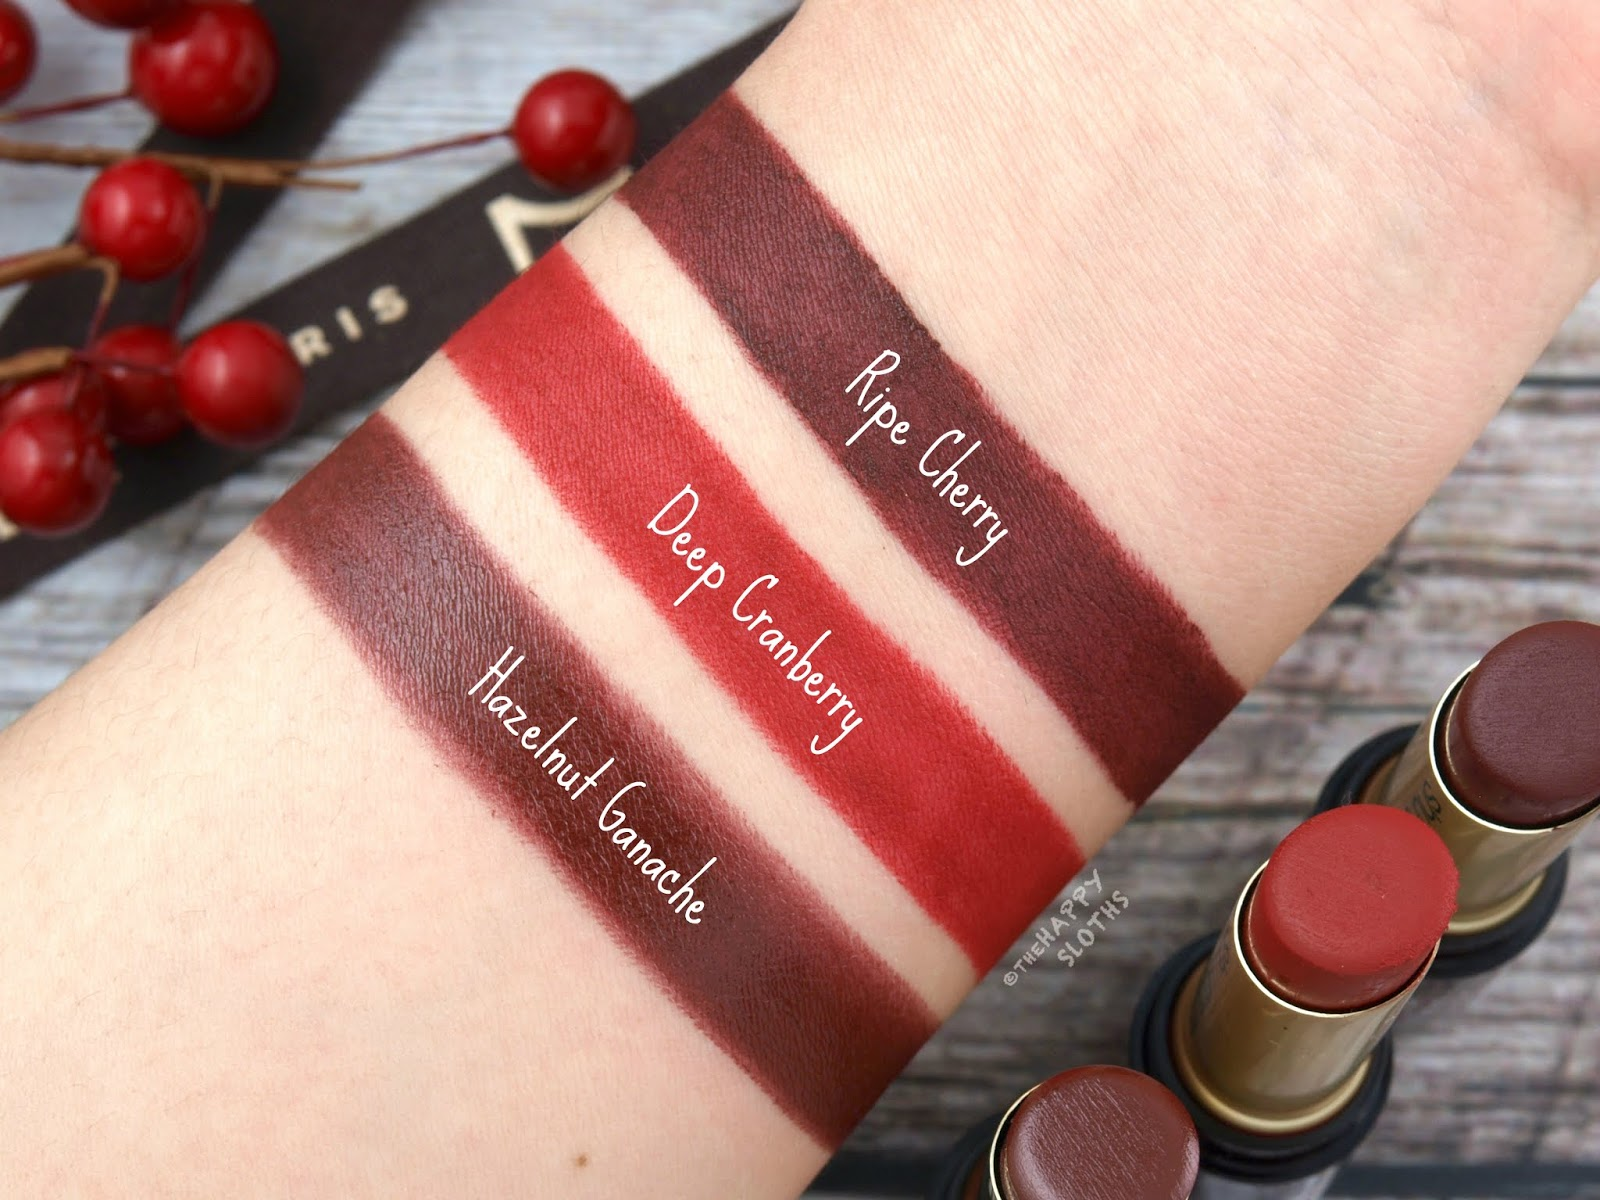 Shu Uemura | Holiday 2018 La Maison du Chocolat Collection | Rouge Unlimited Supreme Matte Lipstick: Review and Swatches